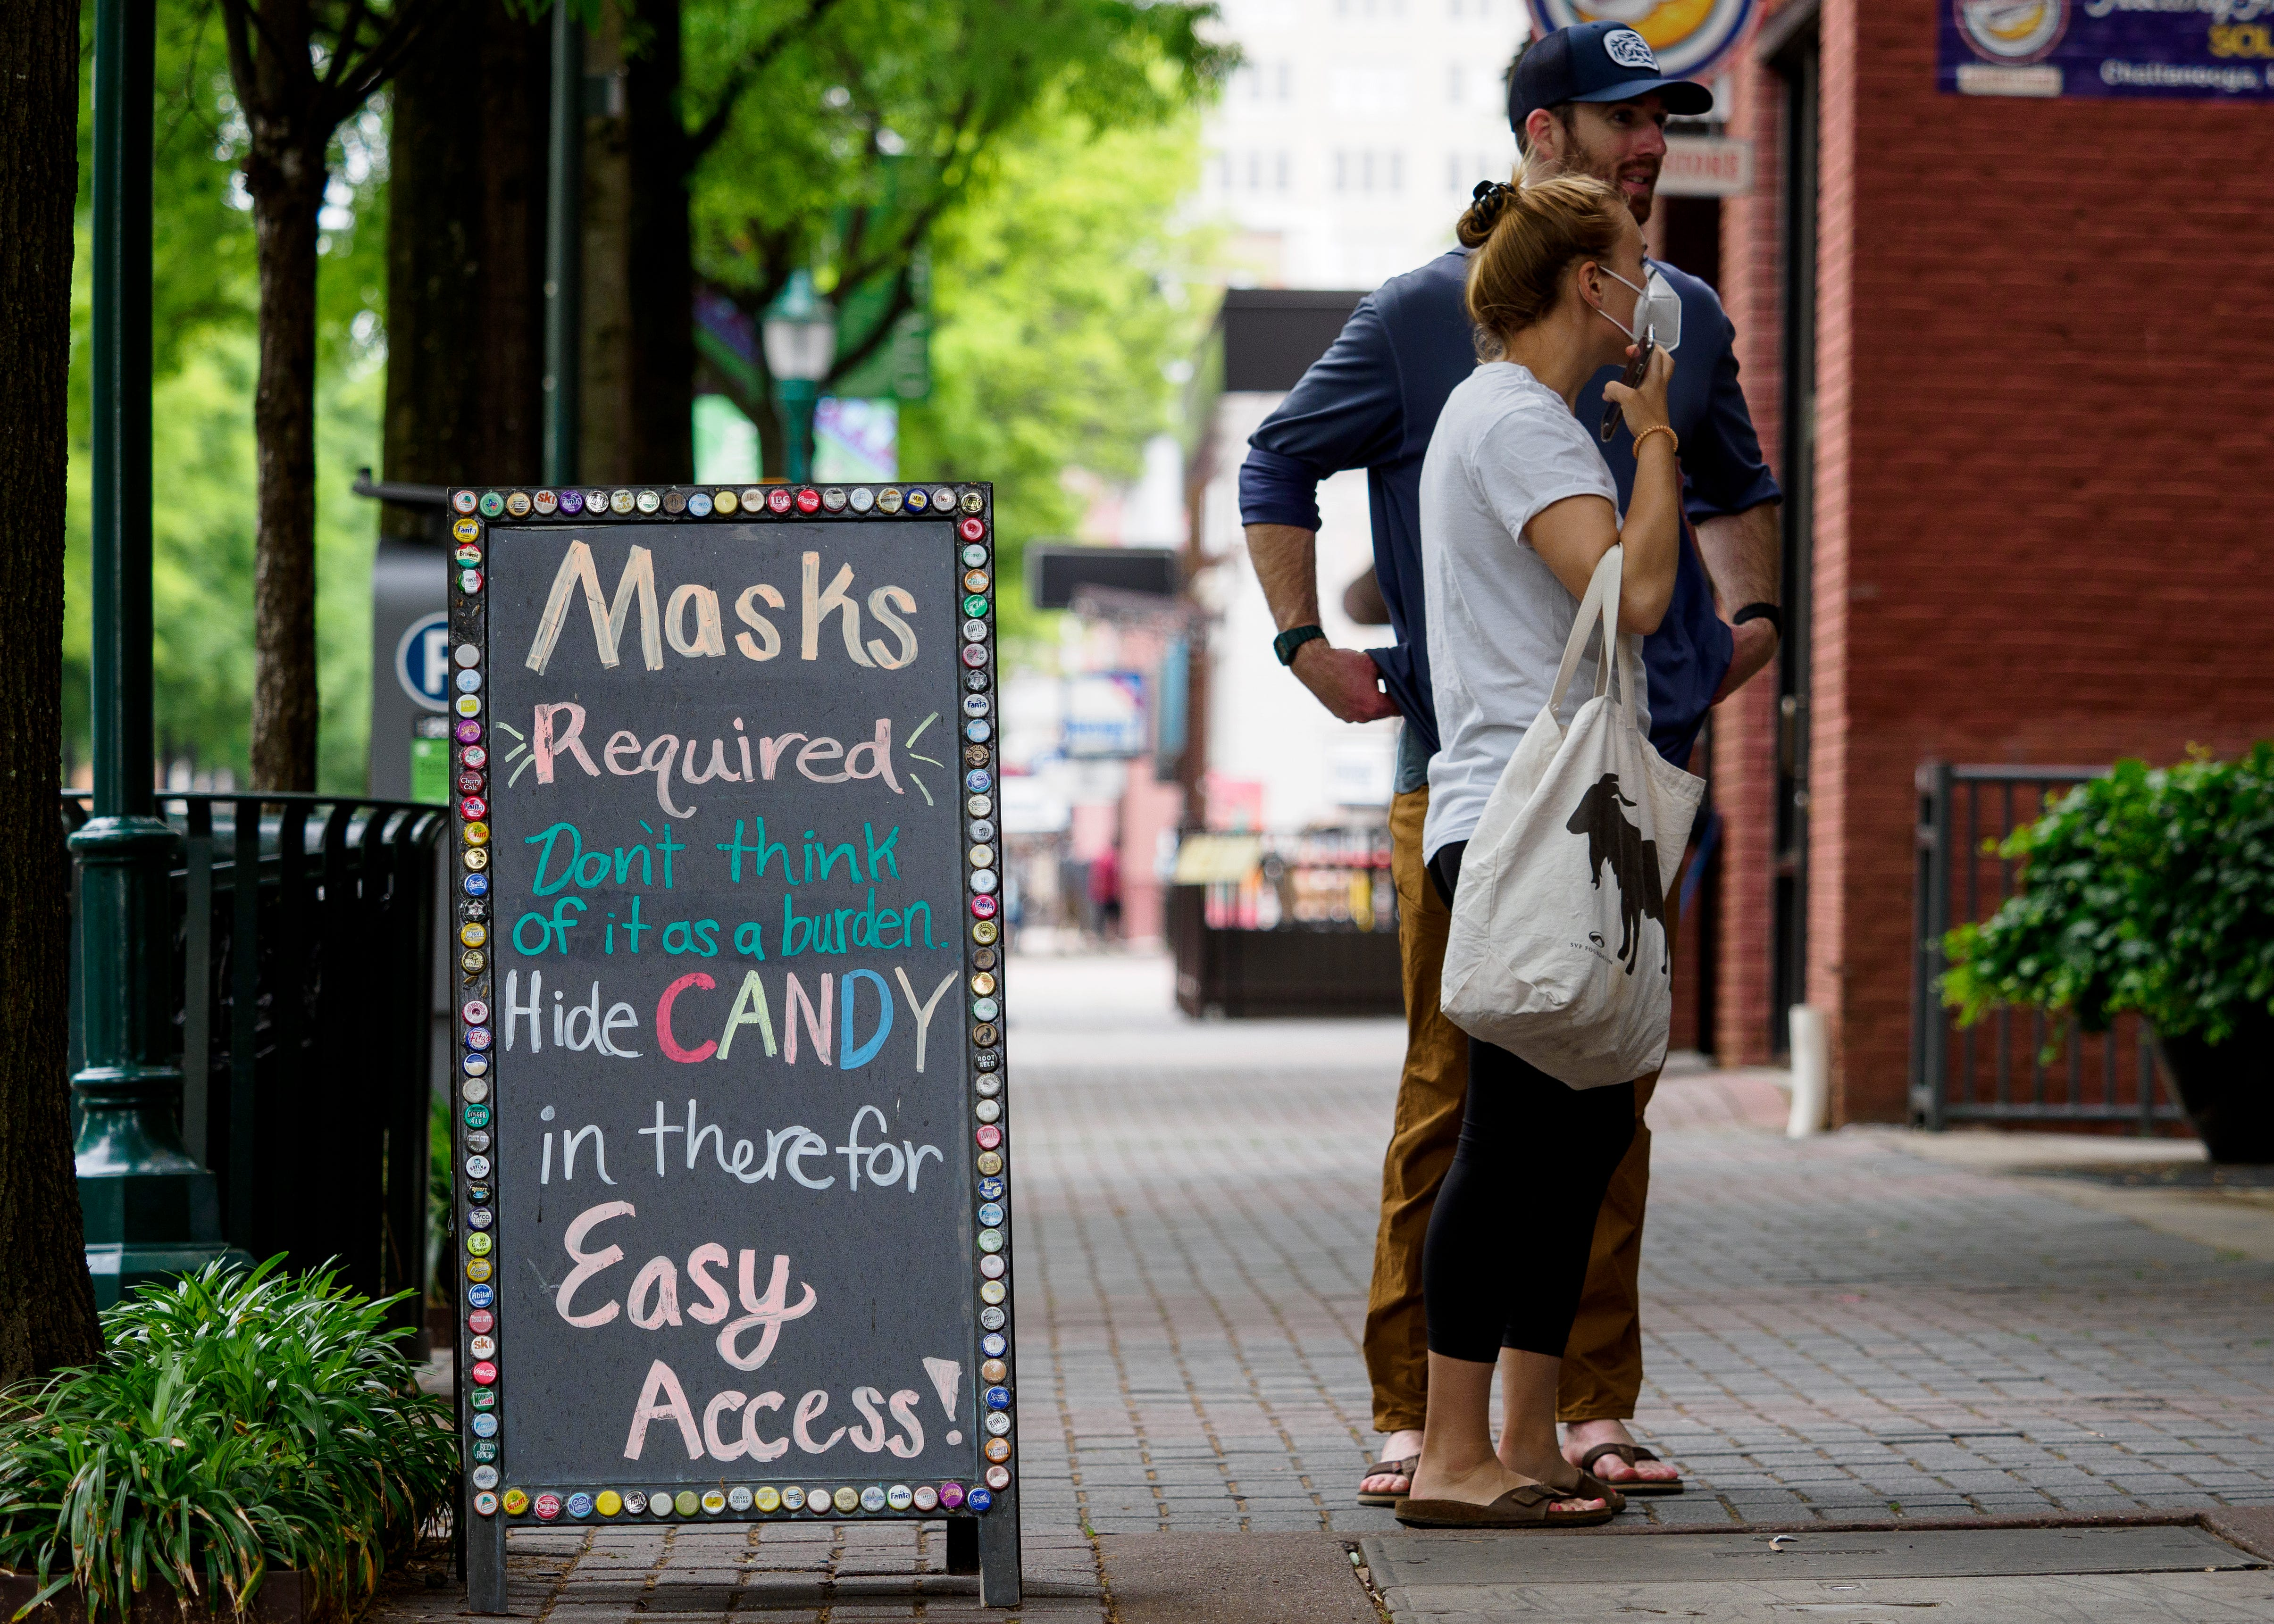 Masks still required for now at Target, Walmart, CVS and more, but retailers review new CDC mask guidance